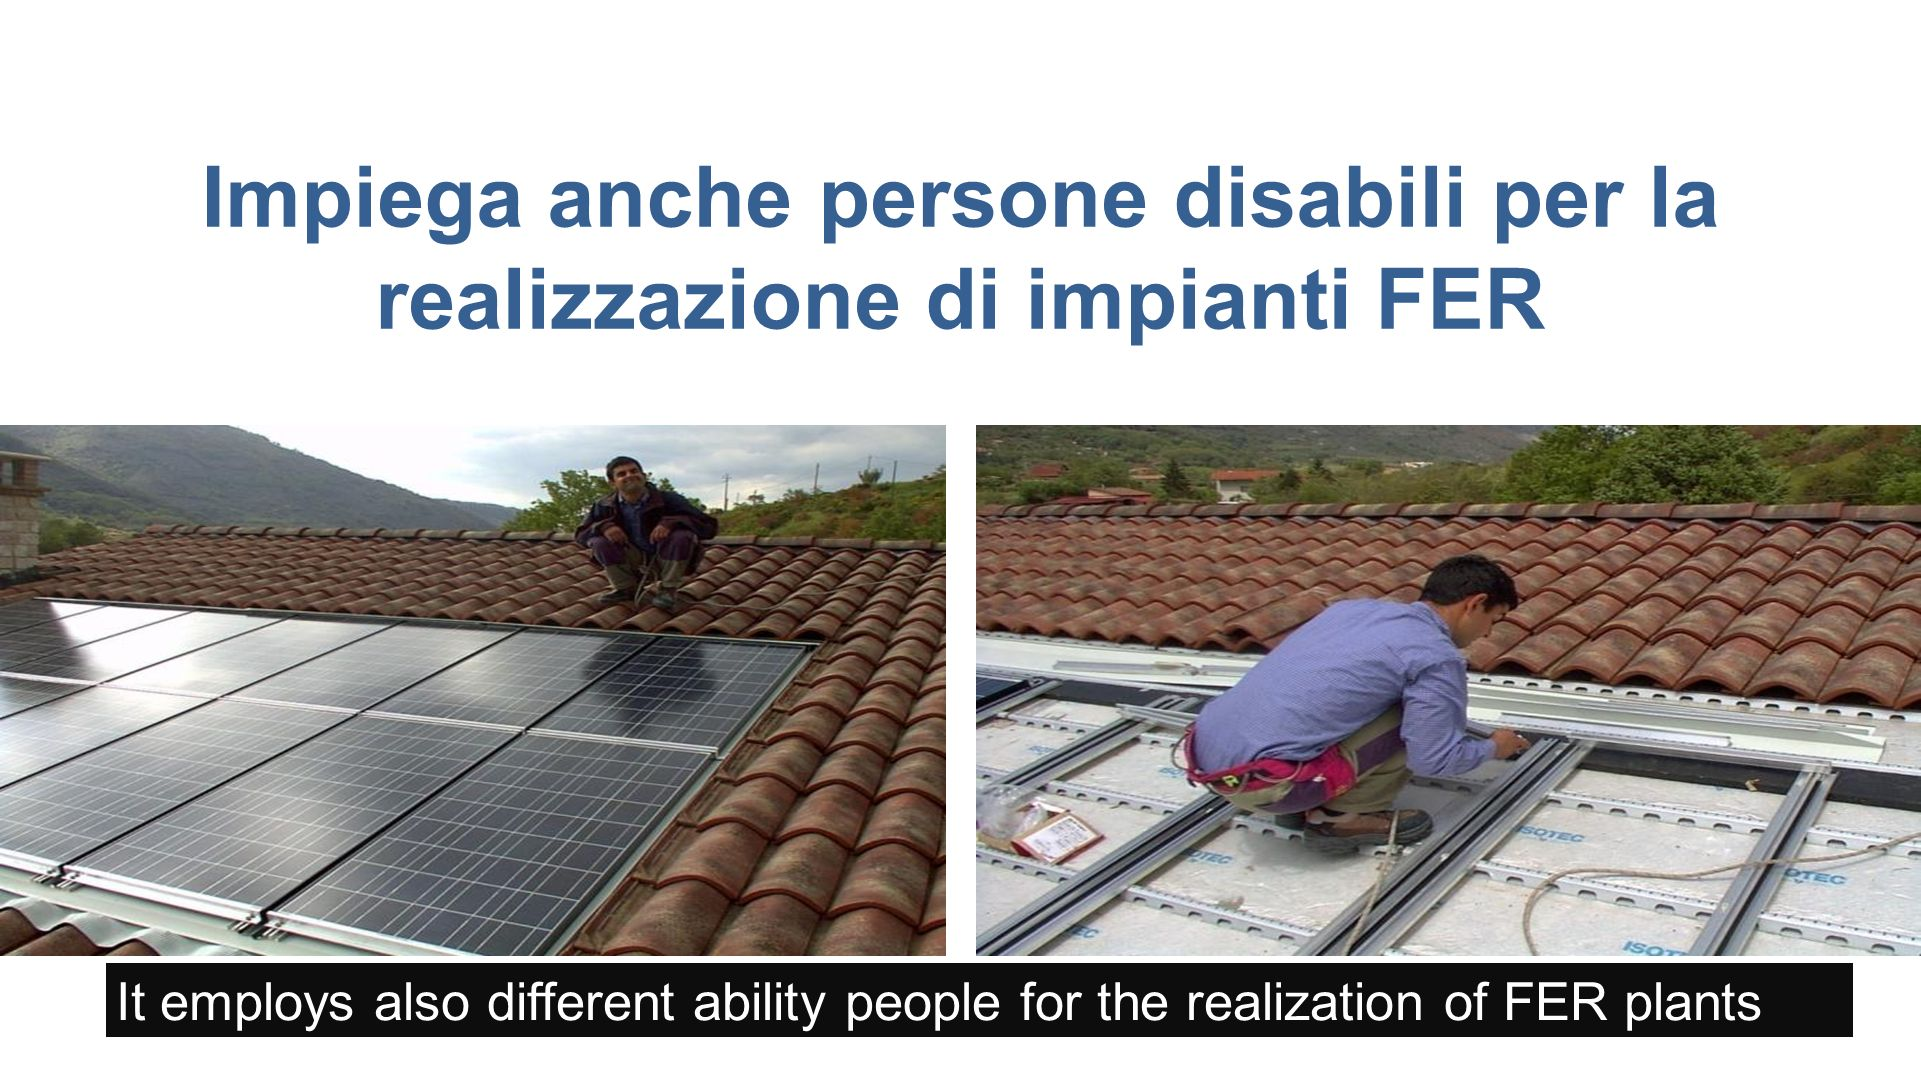 Impiega anche persone disabili per la realizzazione di impianti FER It employs also different ability people for the realization of FER plants